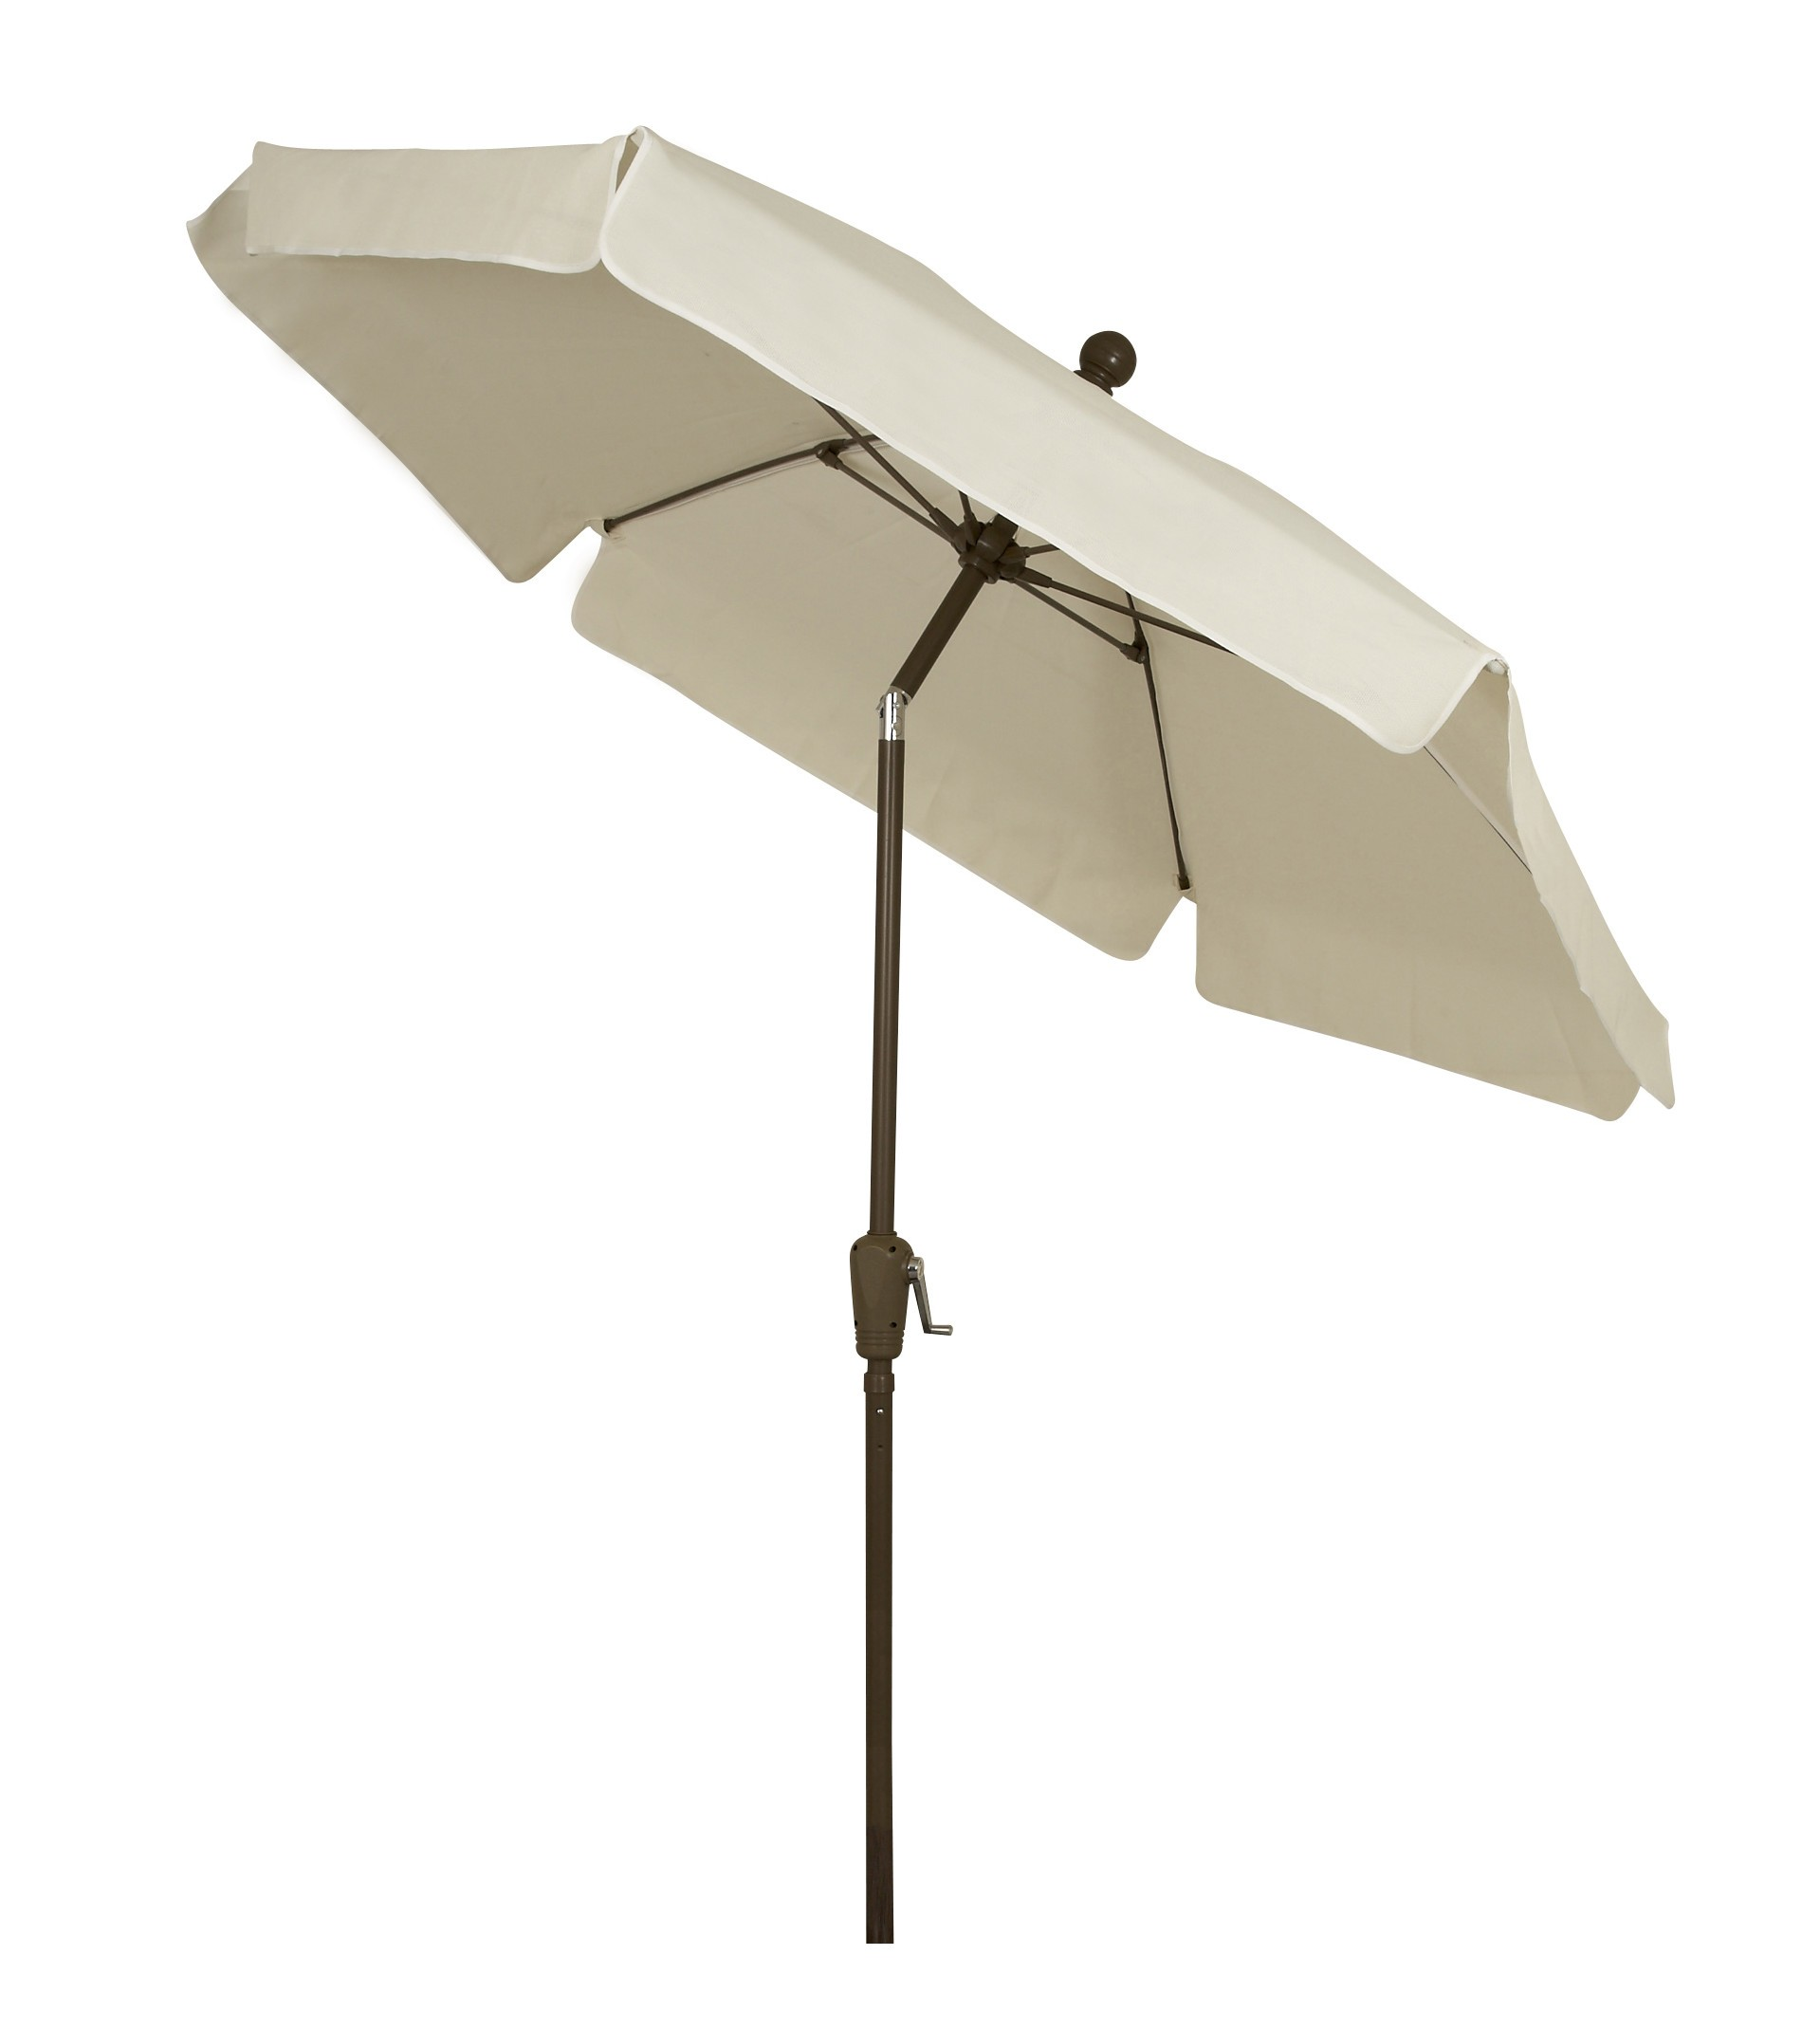 7.5 Foot Fiberglass Garden Umbrella w/ Natural Fabric & Tilt